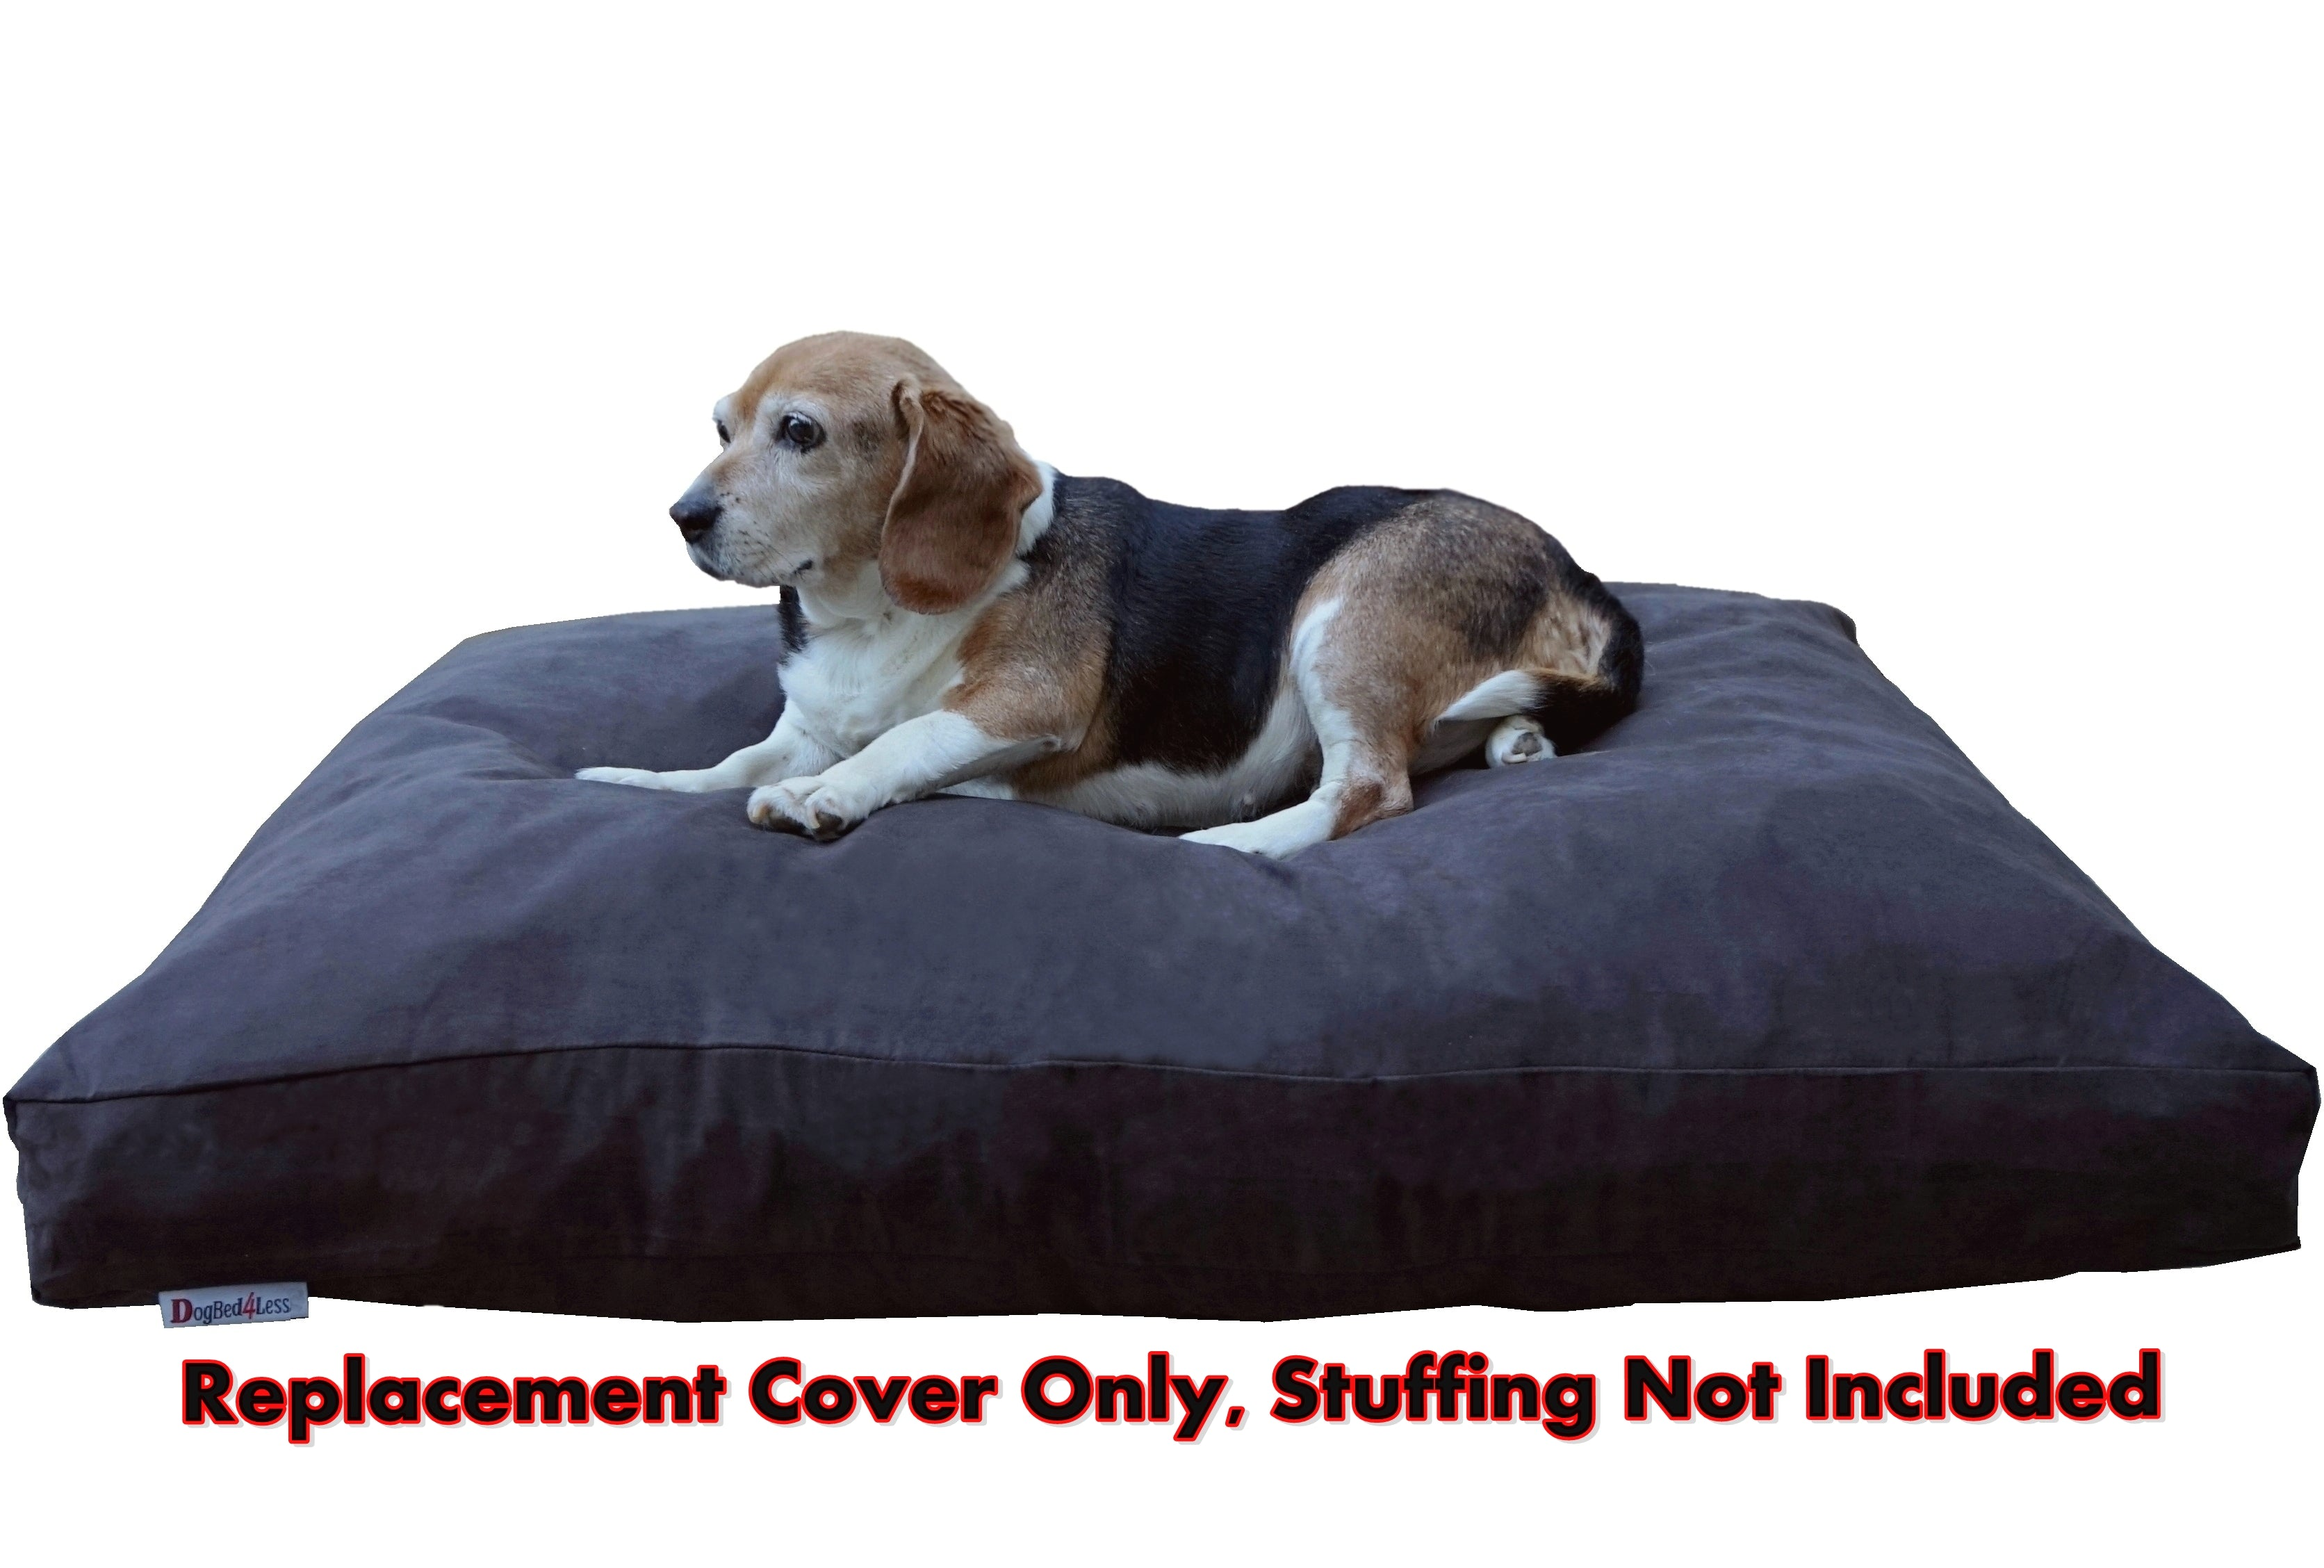 in quantity large to new bed brand sewing brown external duvet stuffing medium color replacement extra zipper removable suede included dog small pet comfortable not durable itm gusset style cover and only with